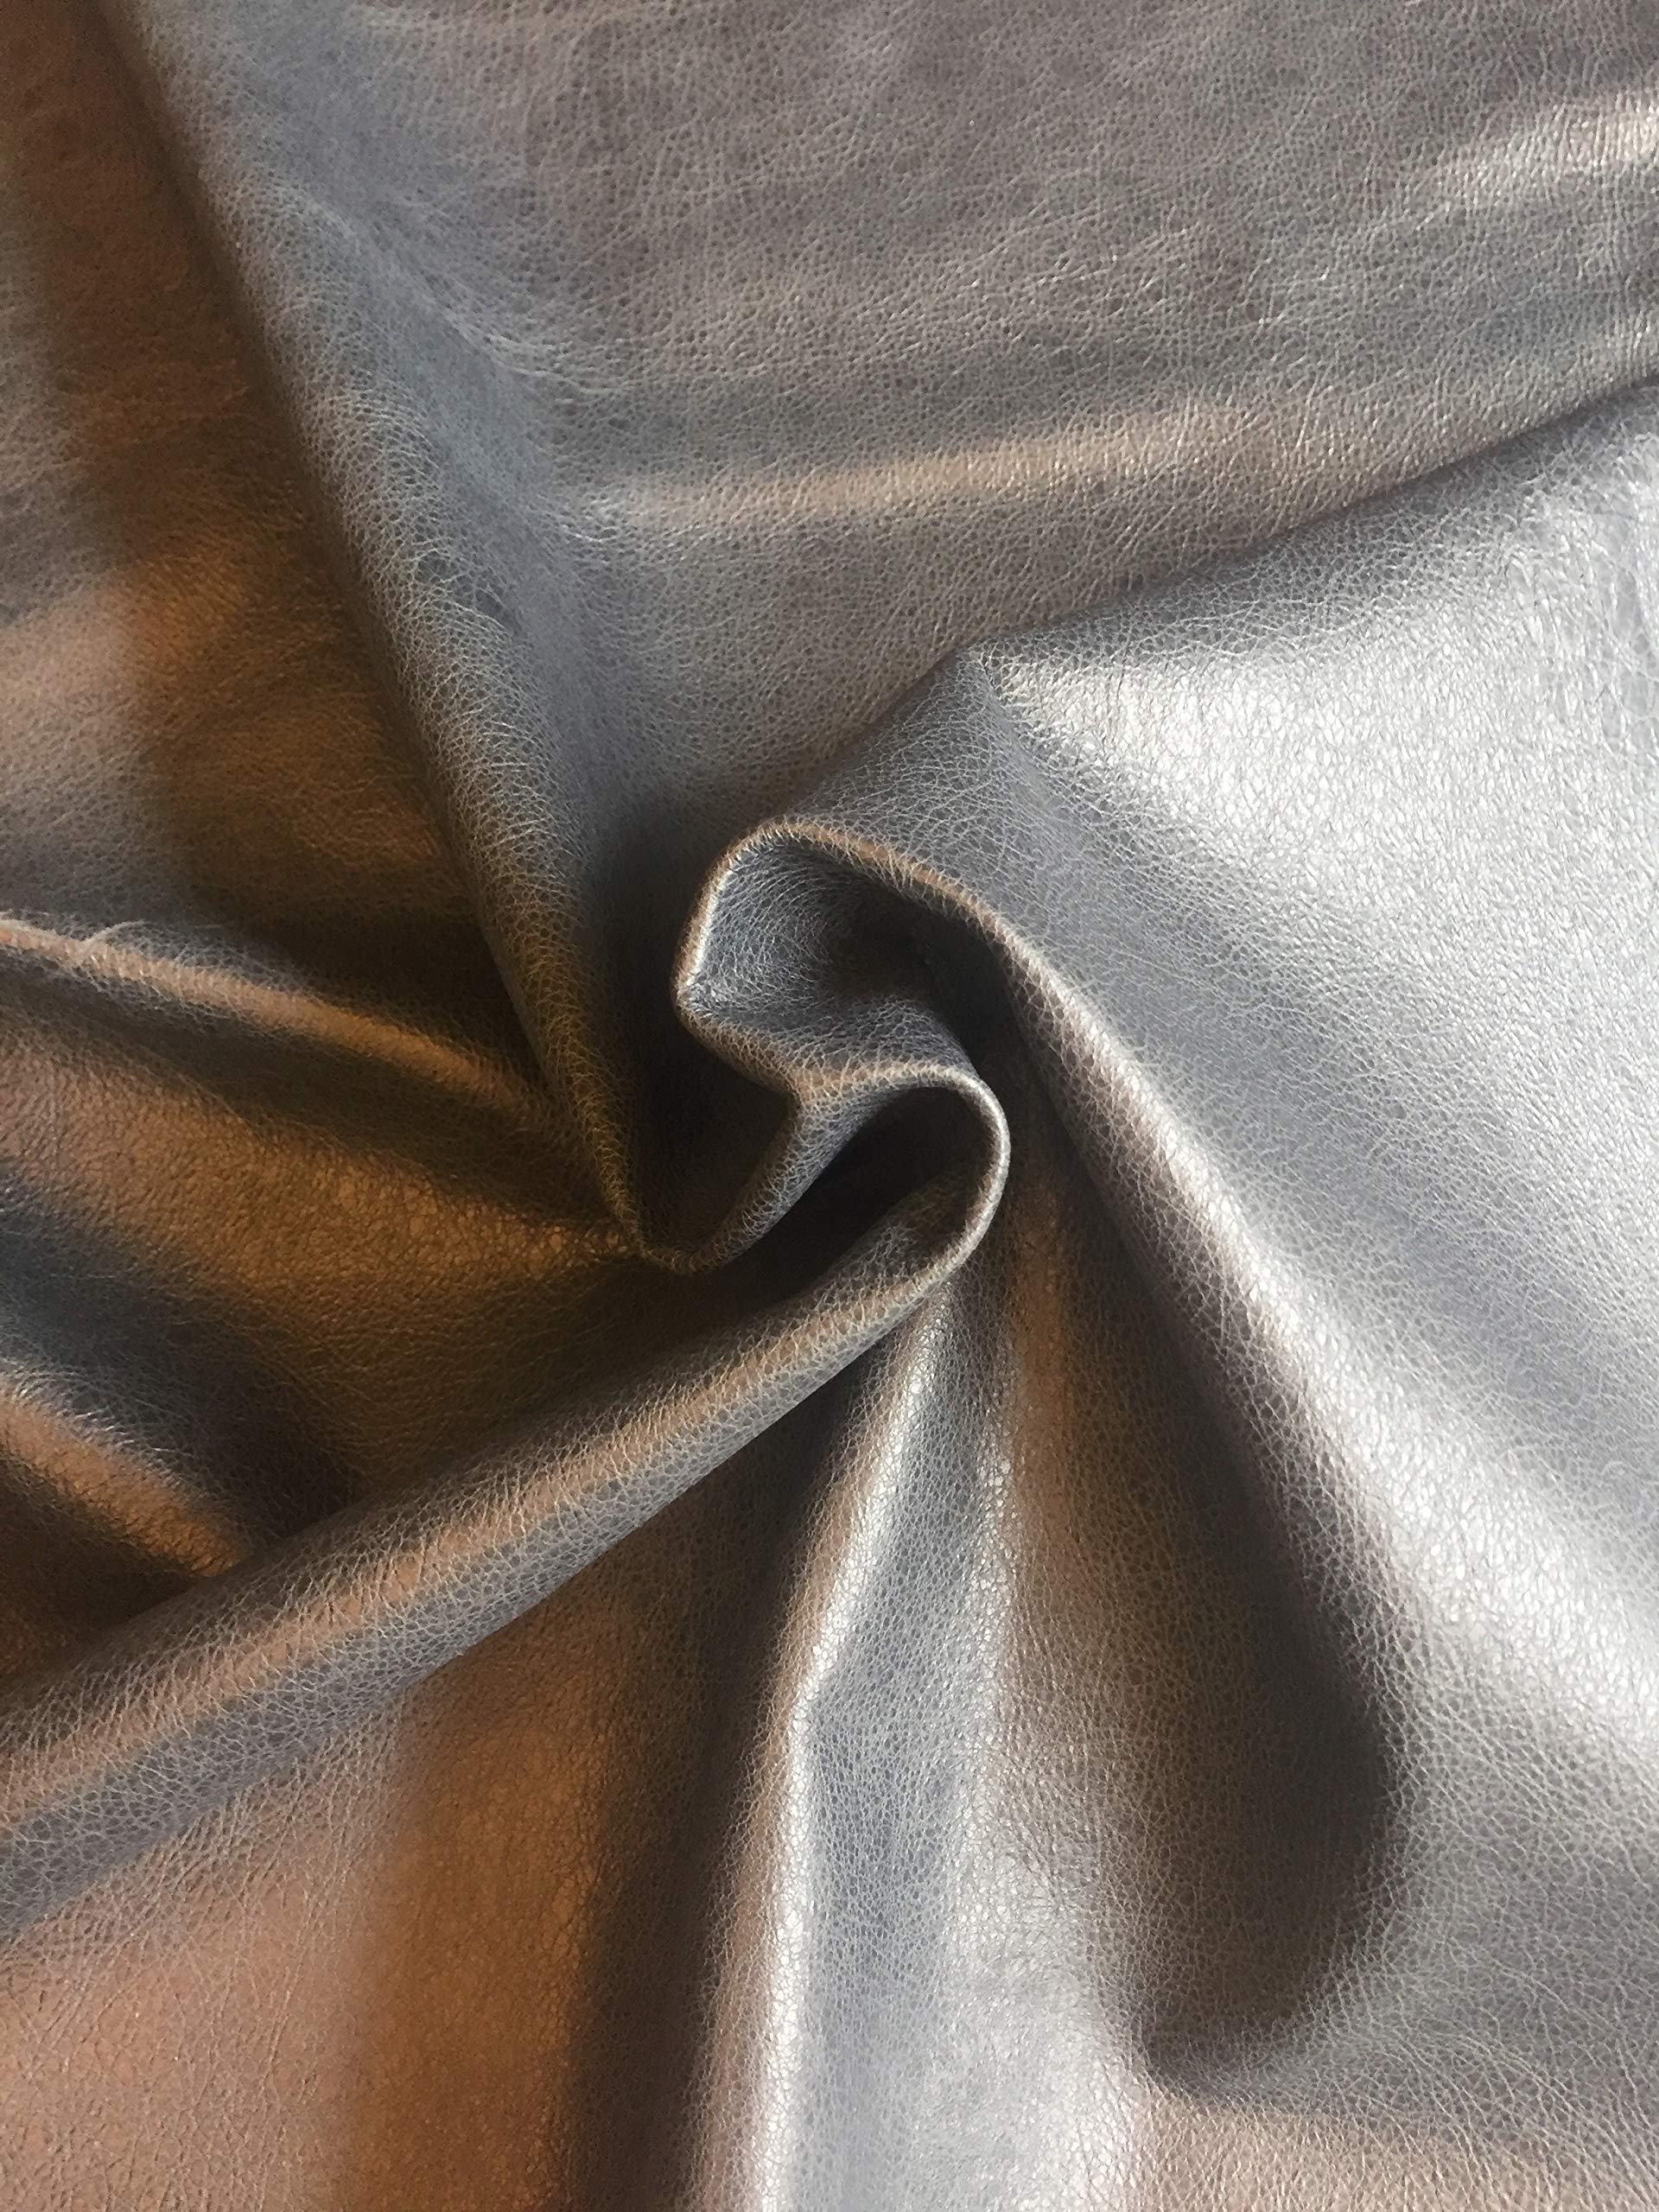 Grey Blue Leather Hide - Full Skin - Rustic Finish - 8 sq ft - 1 oz AVG - Genuine Sheepskin Material - Top Quality Lambskin - Craft DIY Projects - Soft Thin Upholstery Fabric - Leather Treasure